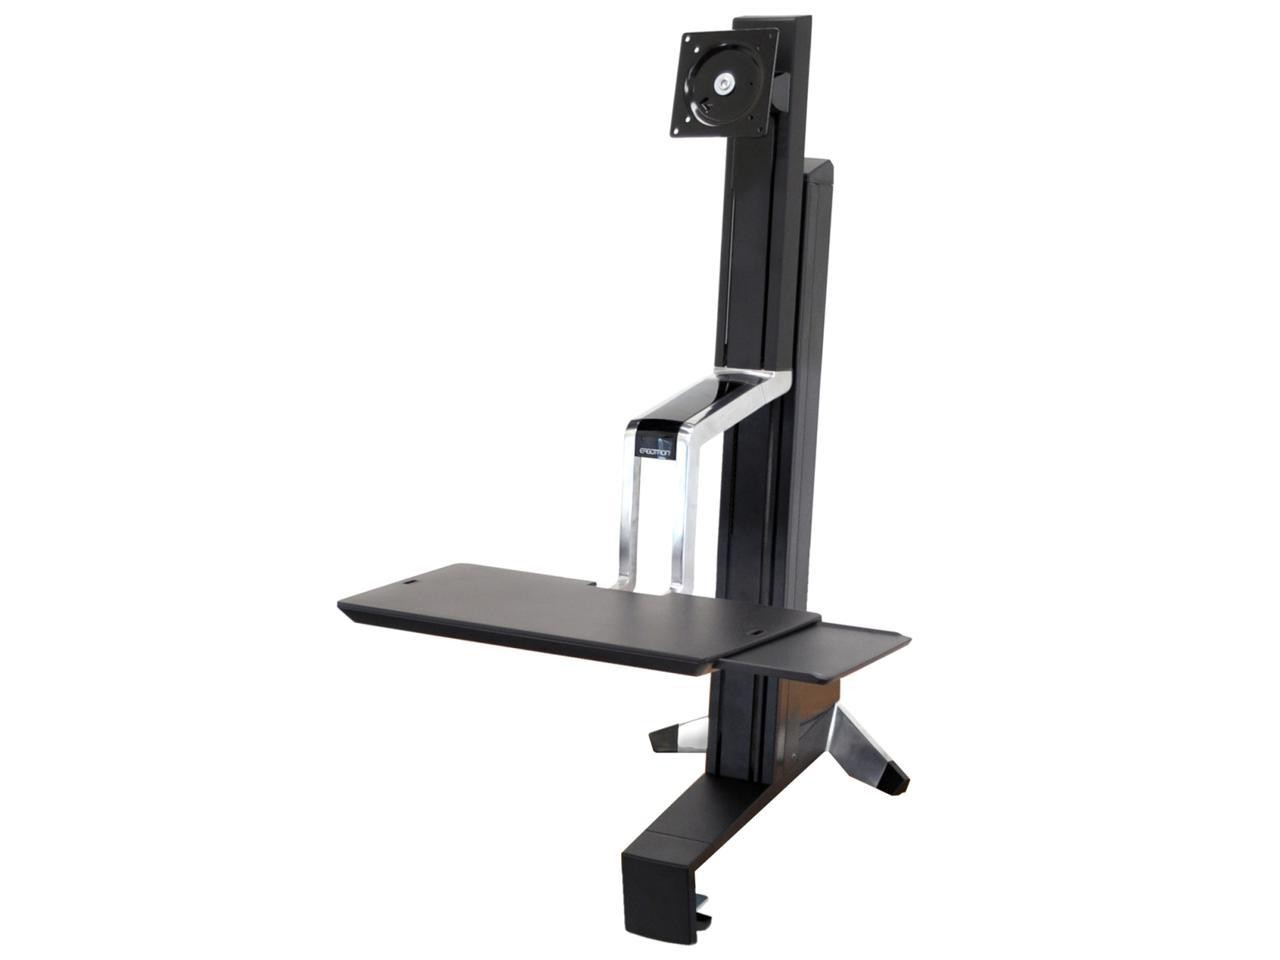 Ergotron WorkFit-S Single LD Sit-Stand Workstation Plastic Aluminum For LCD Display Black 33-342-200